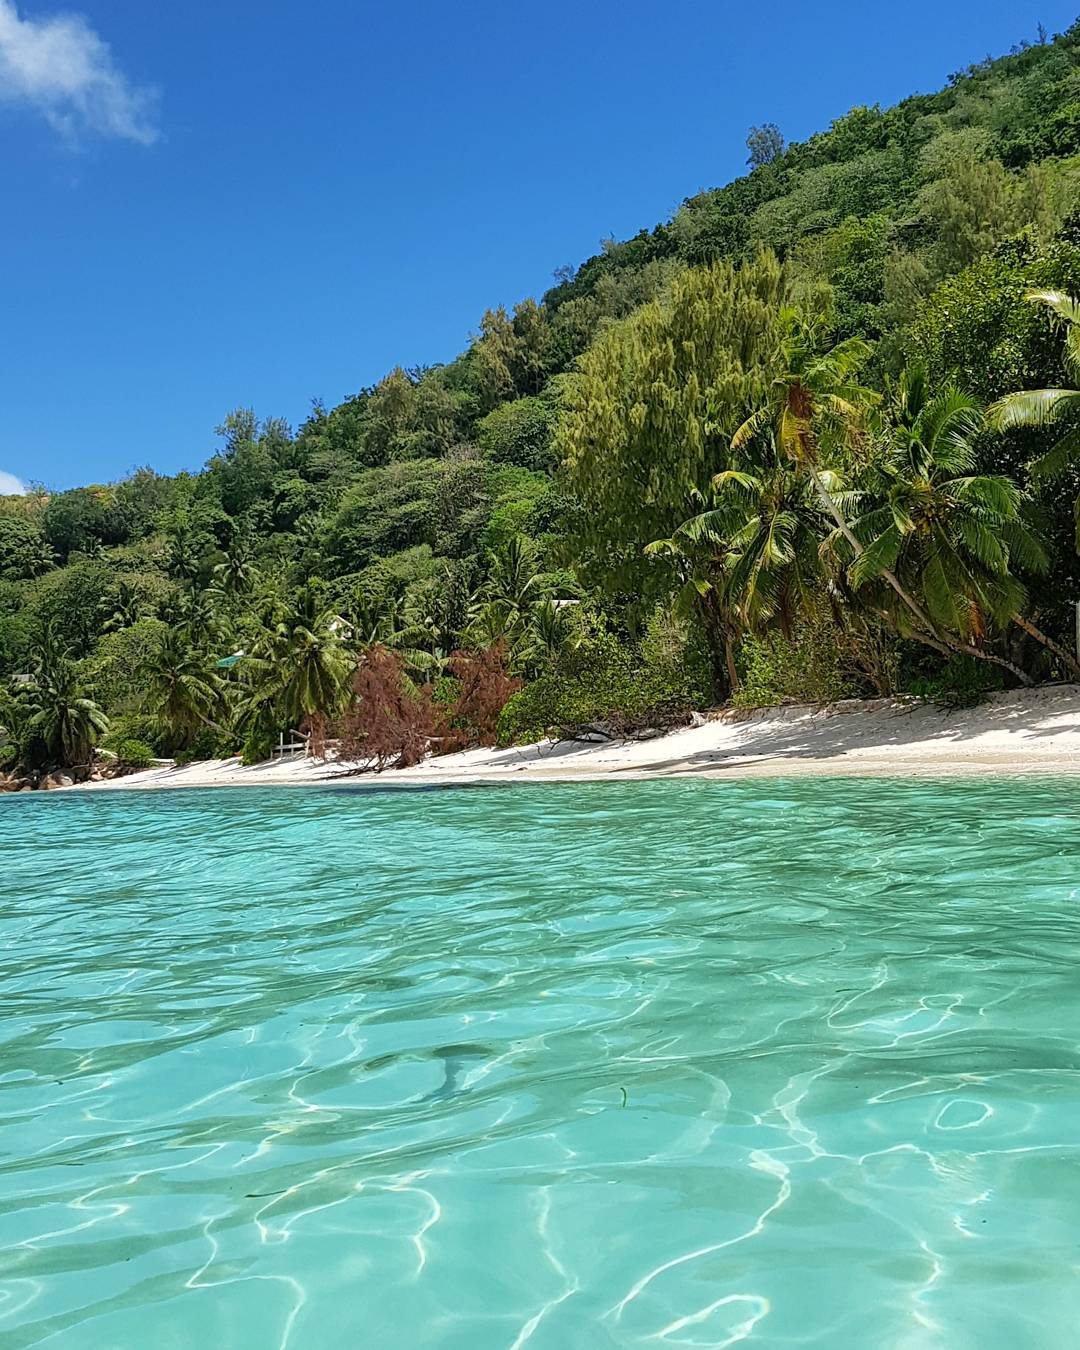 Seychelles Island Beaches: Why Fly To The Seychelles?